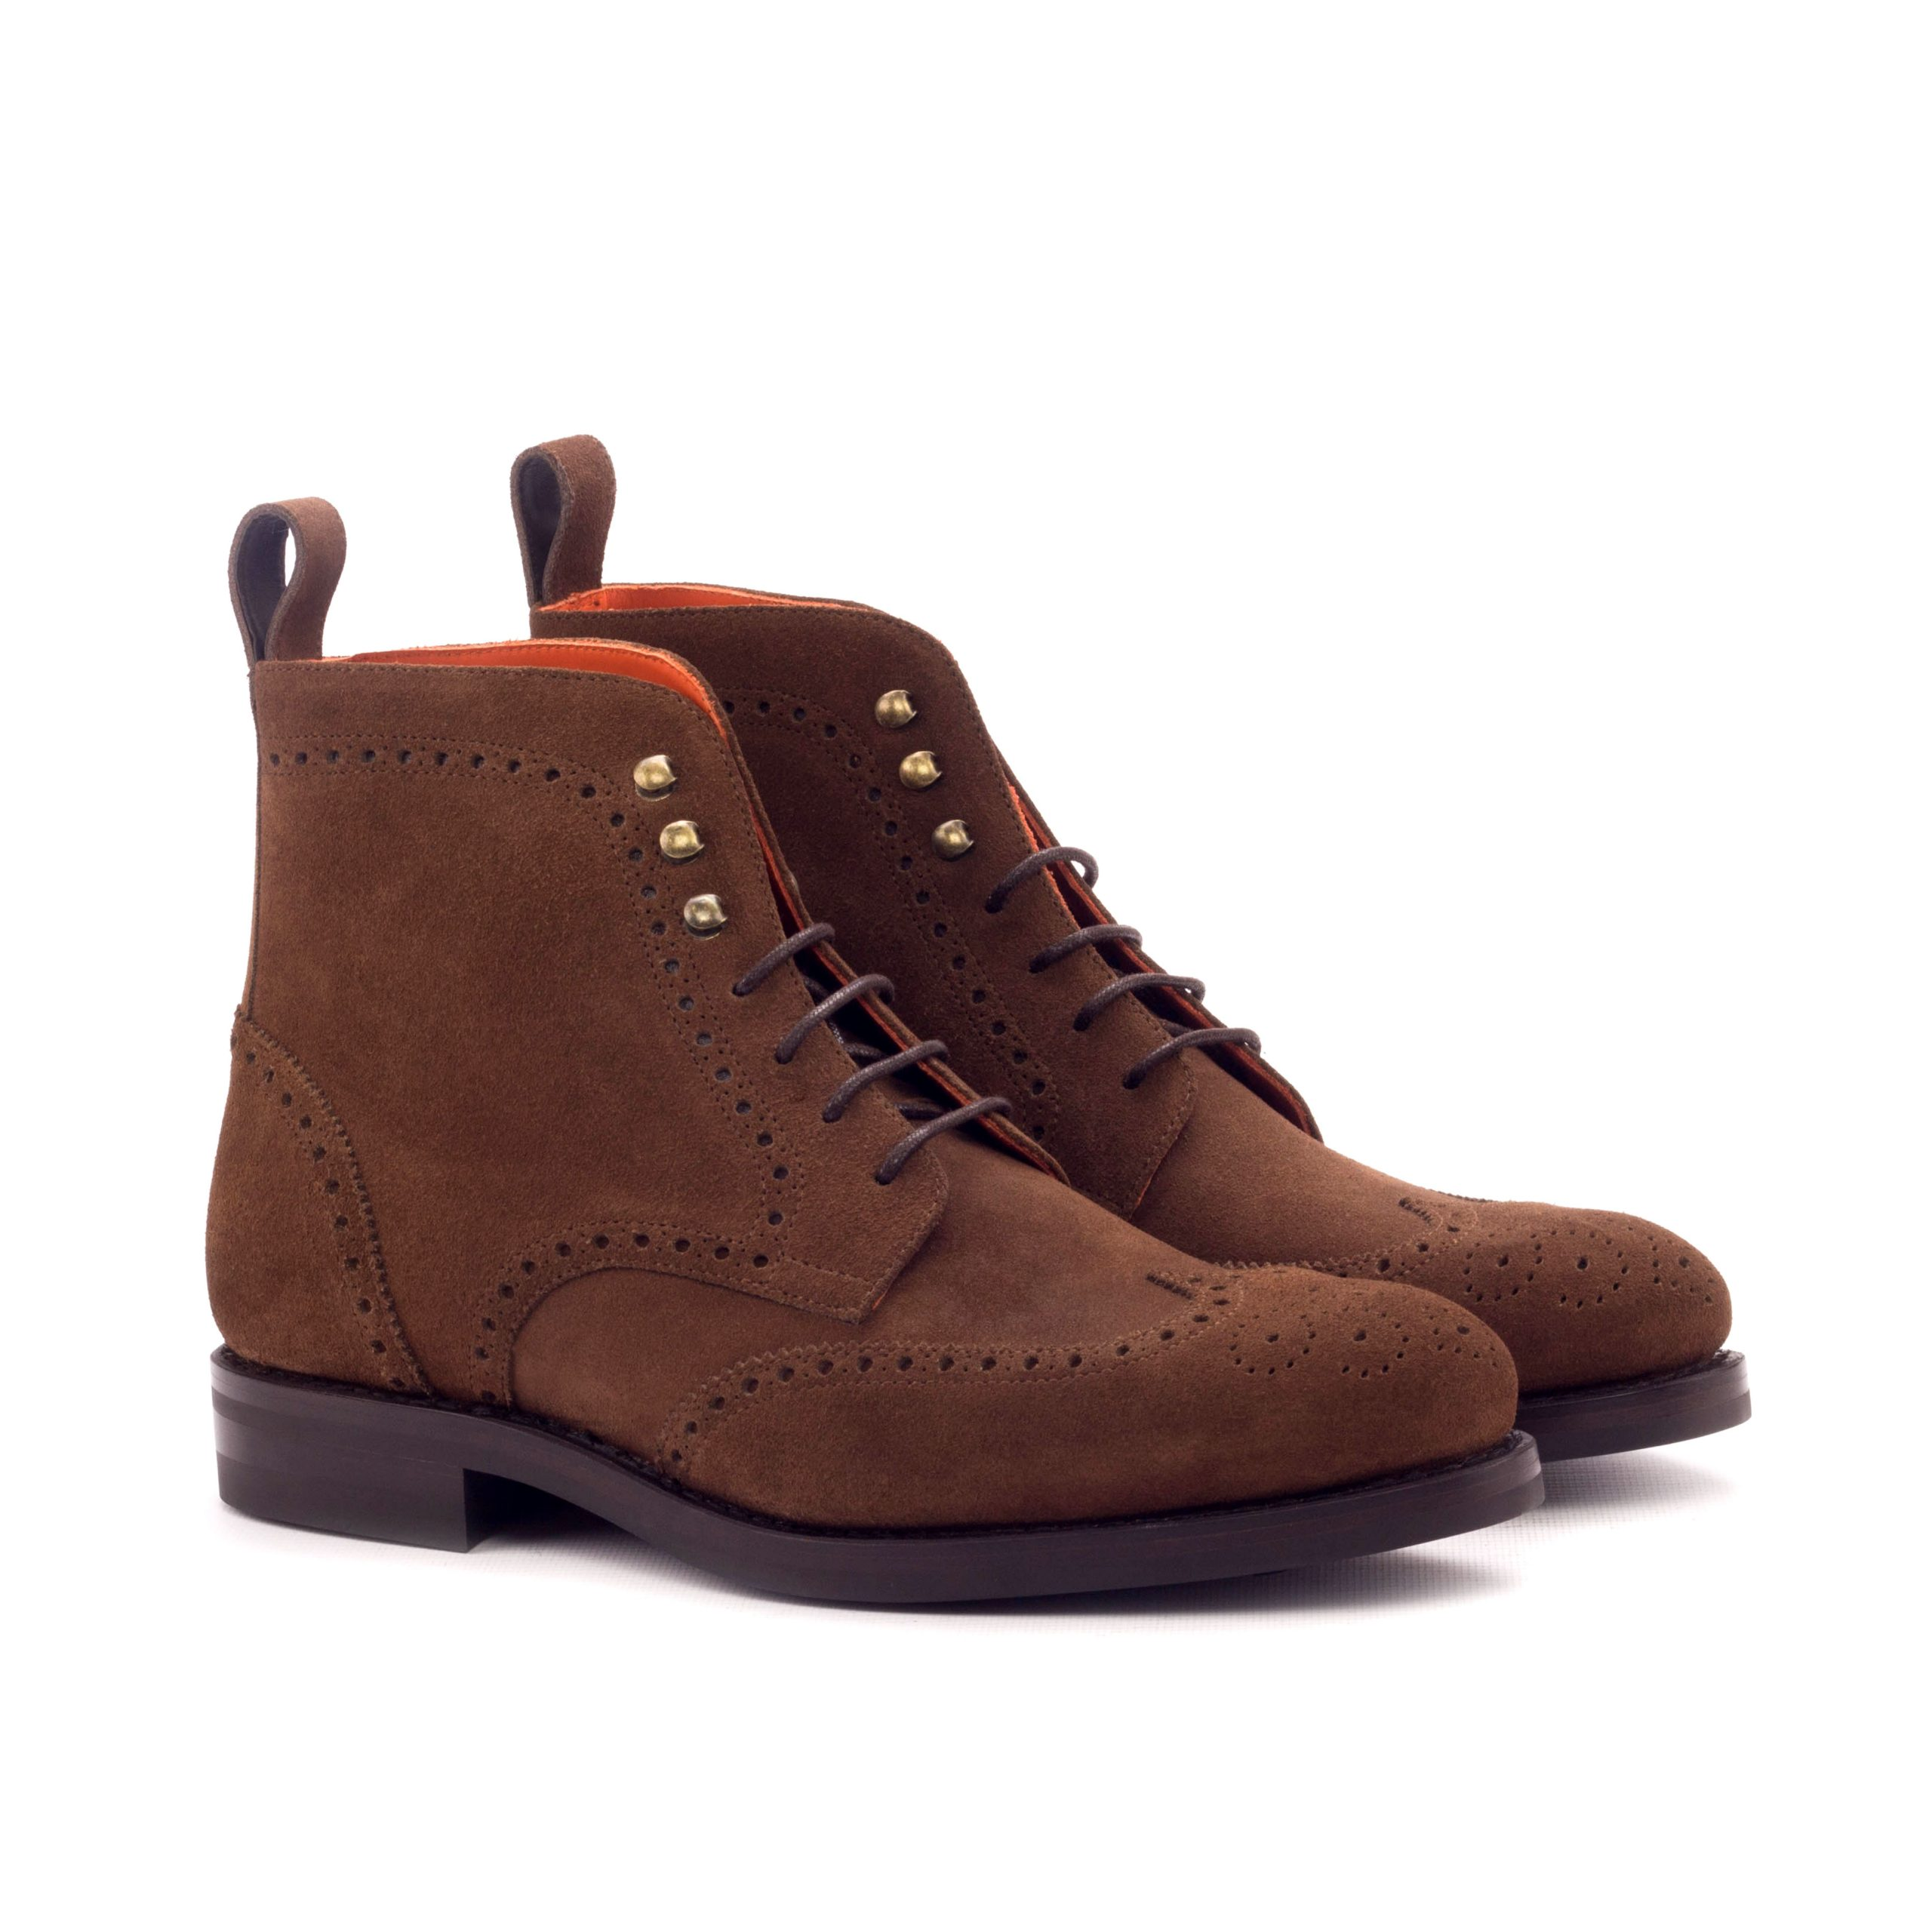 Military Boot Goodyear Welted - Lux Suede Med Brown-Ang5